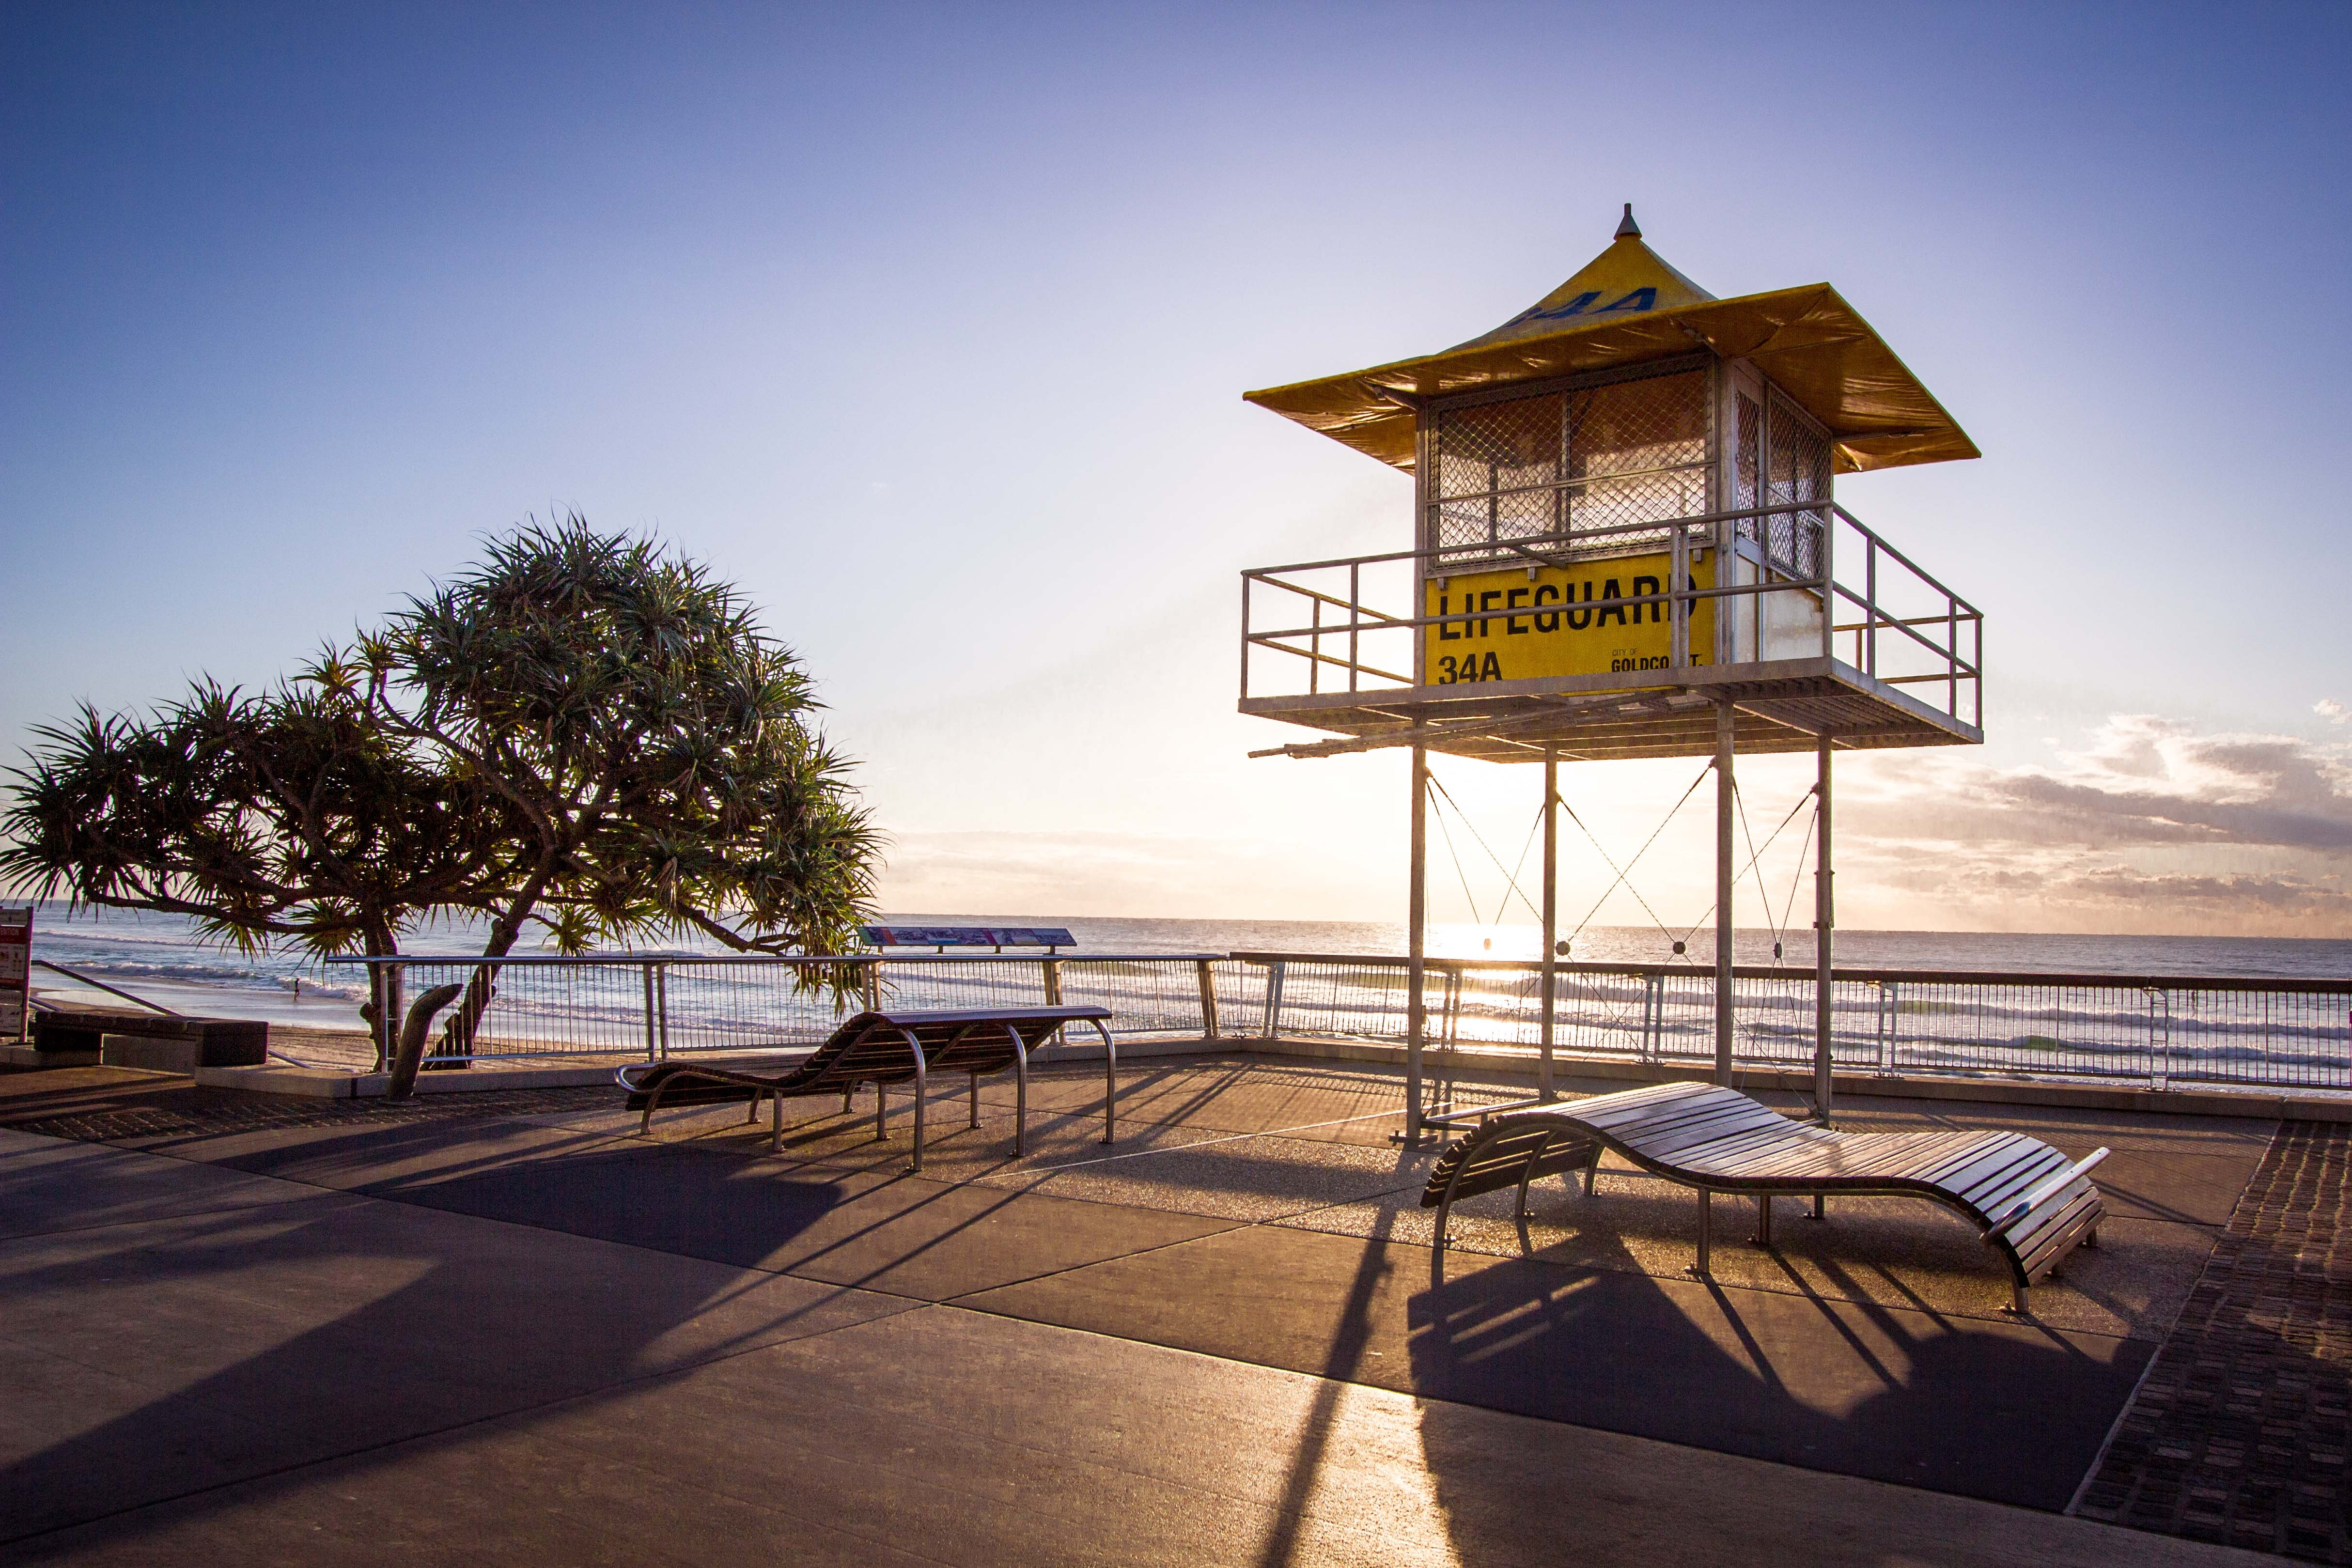 Lifeguard stand and tree cast shadows on the beachside promenade at Surfers Paradise during sunrise-or-sunset